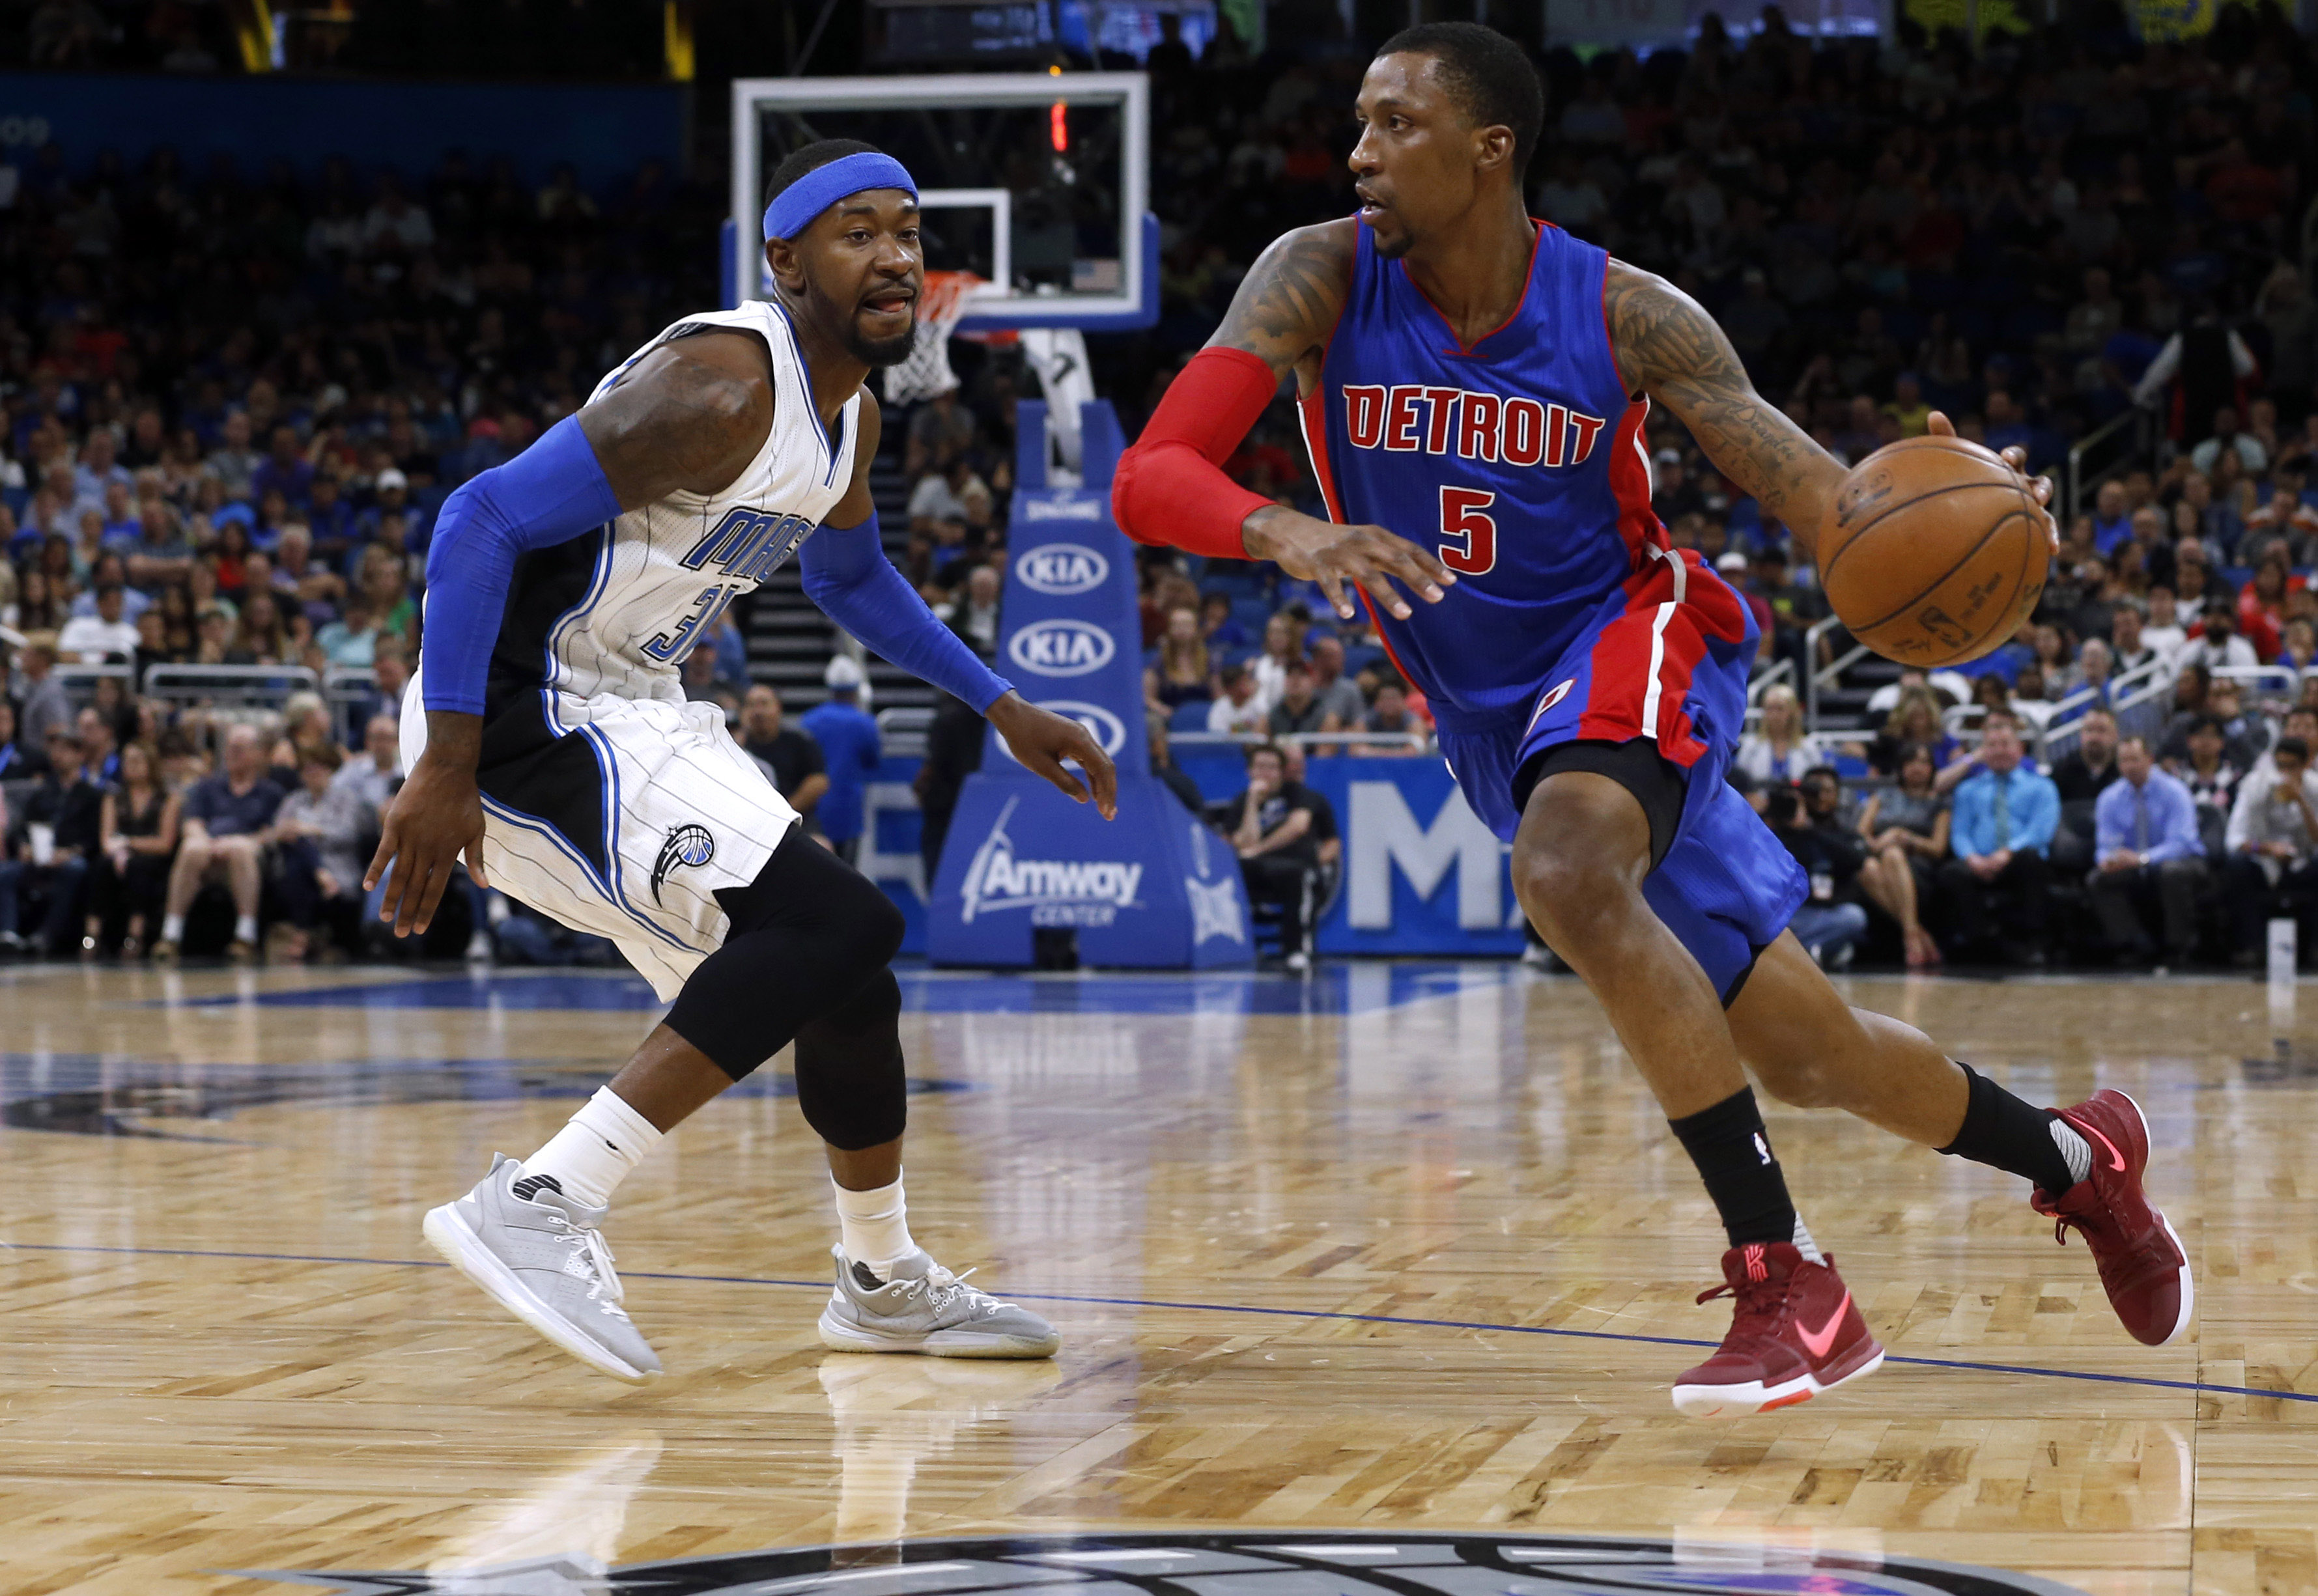 10008952-nba-detroit-pistons-at-orlando-magic-1